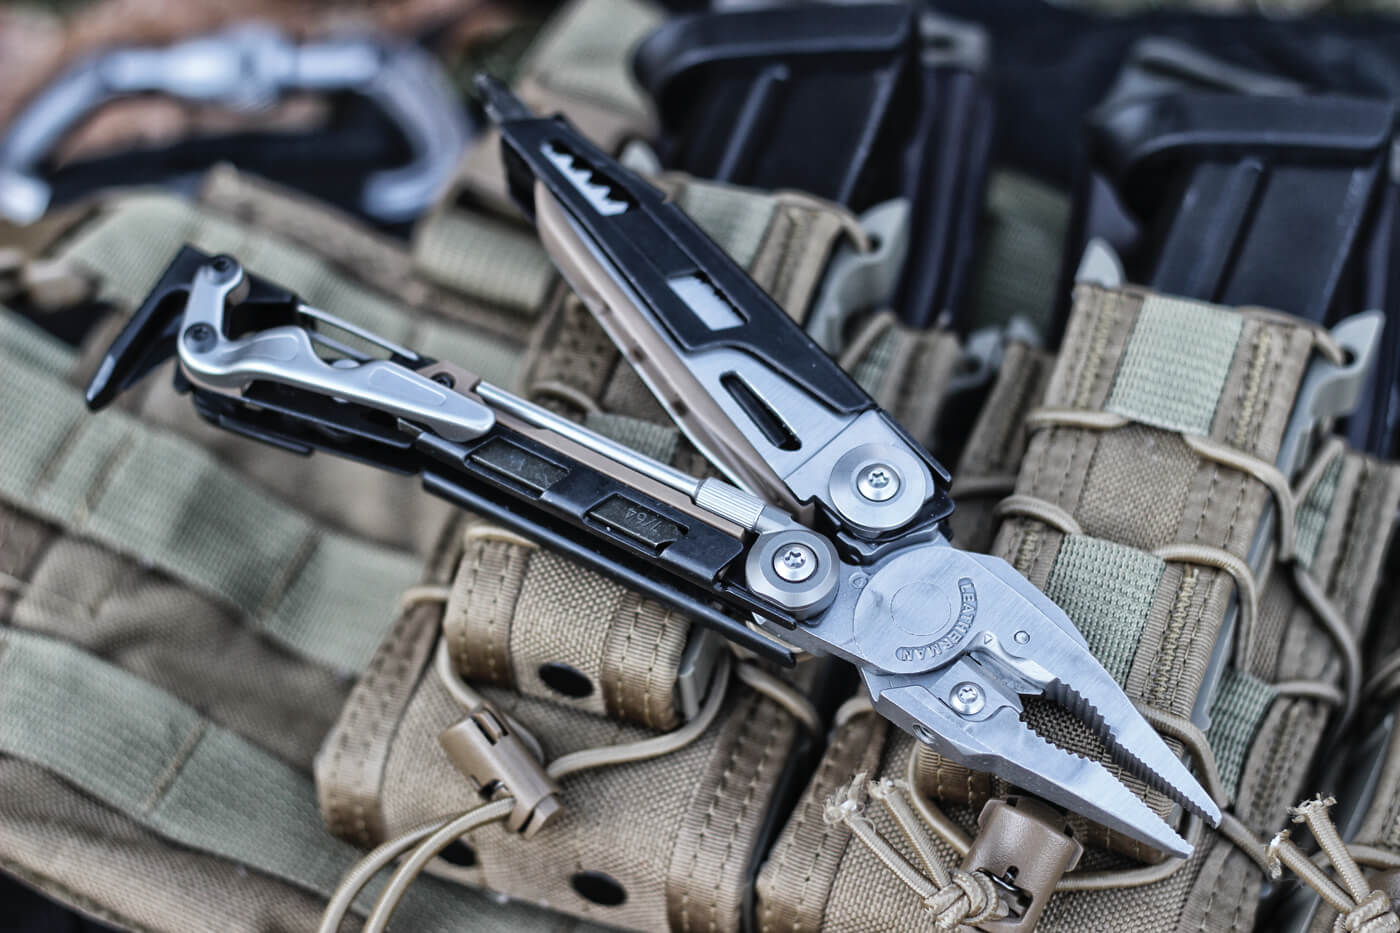 Close-up shot of Leatherman multi-tool, chest rig and spare magazines